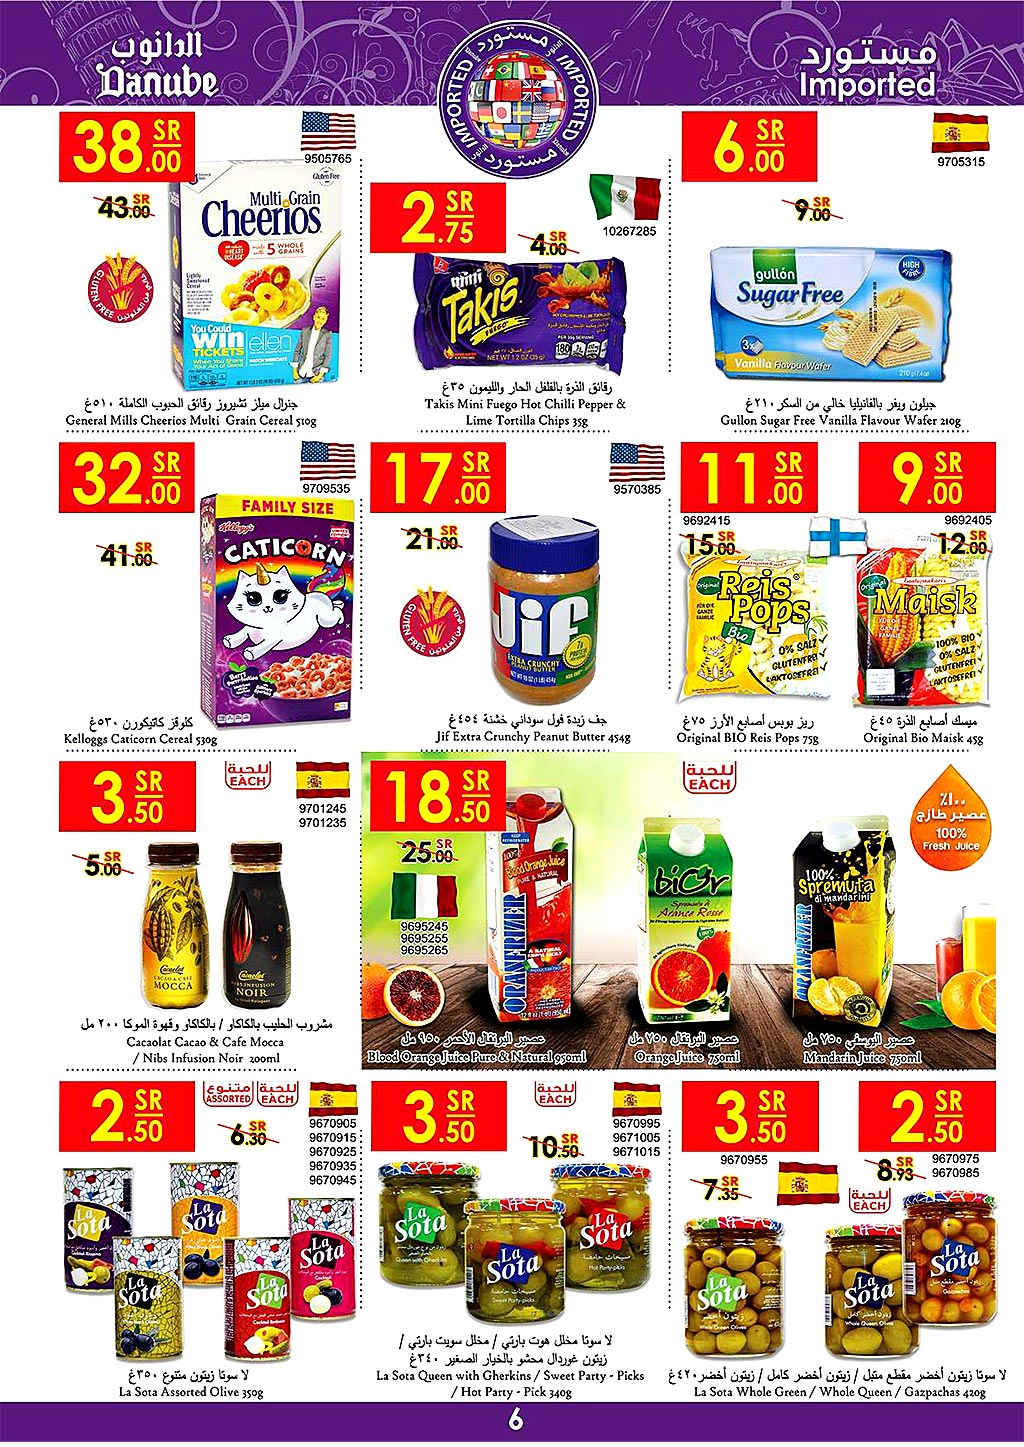 danube offers from 24july to 30july 2019 page number 5 عروض الدانوب من 24 يوليو حتى 30 يوليو 2019 صفحة رقم 5